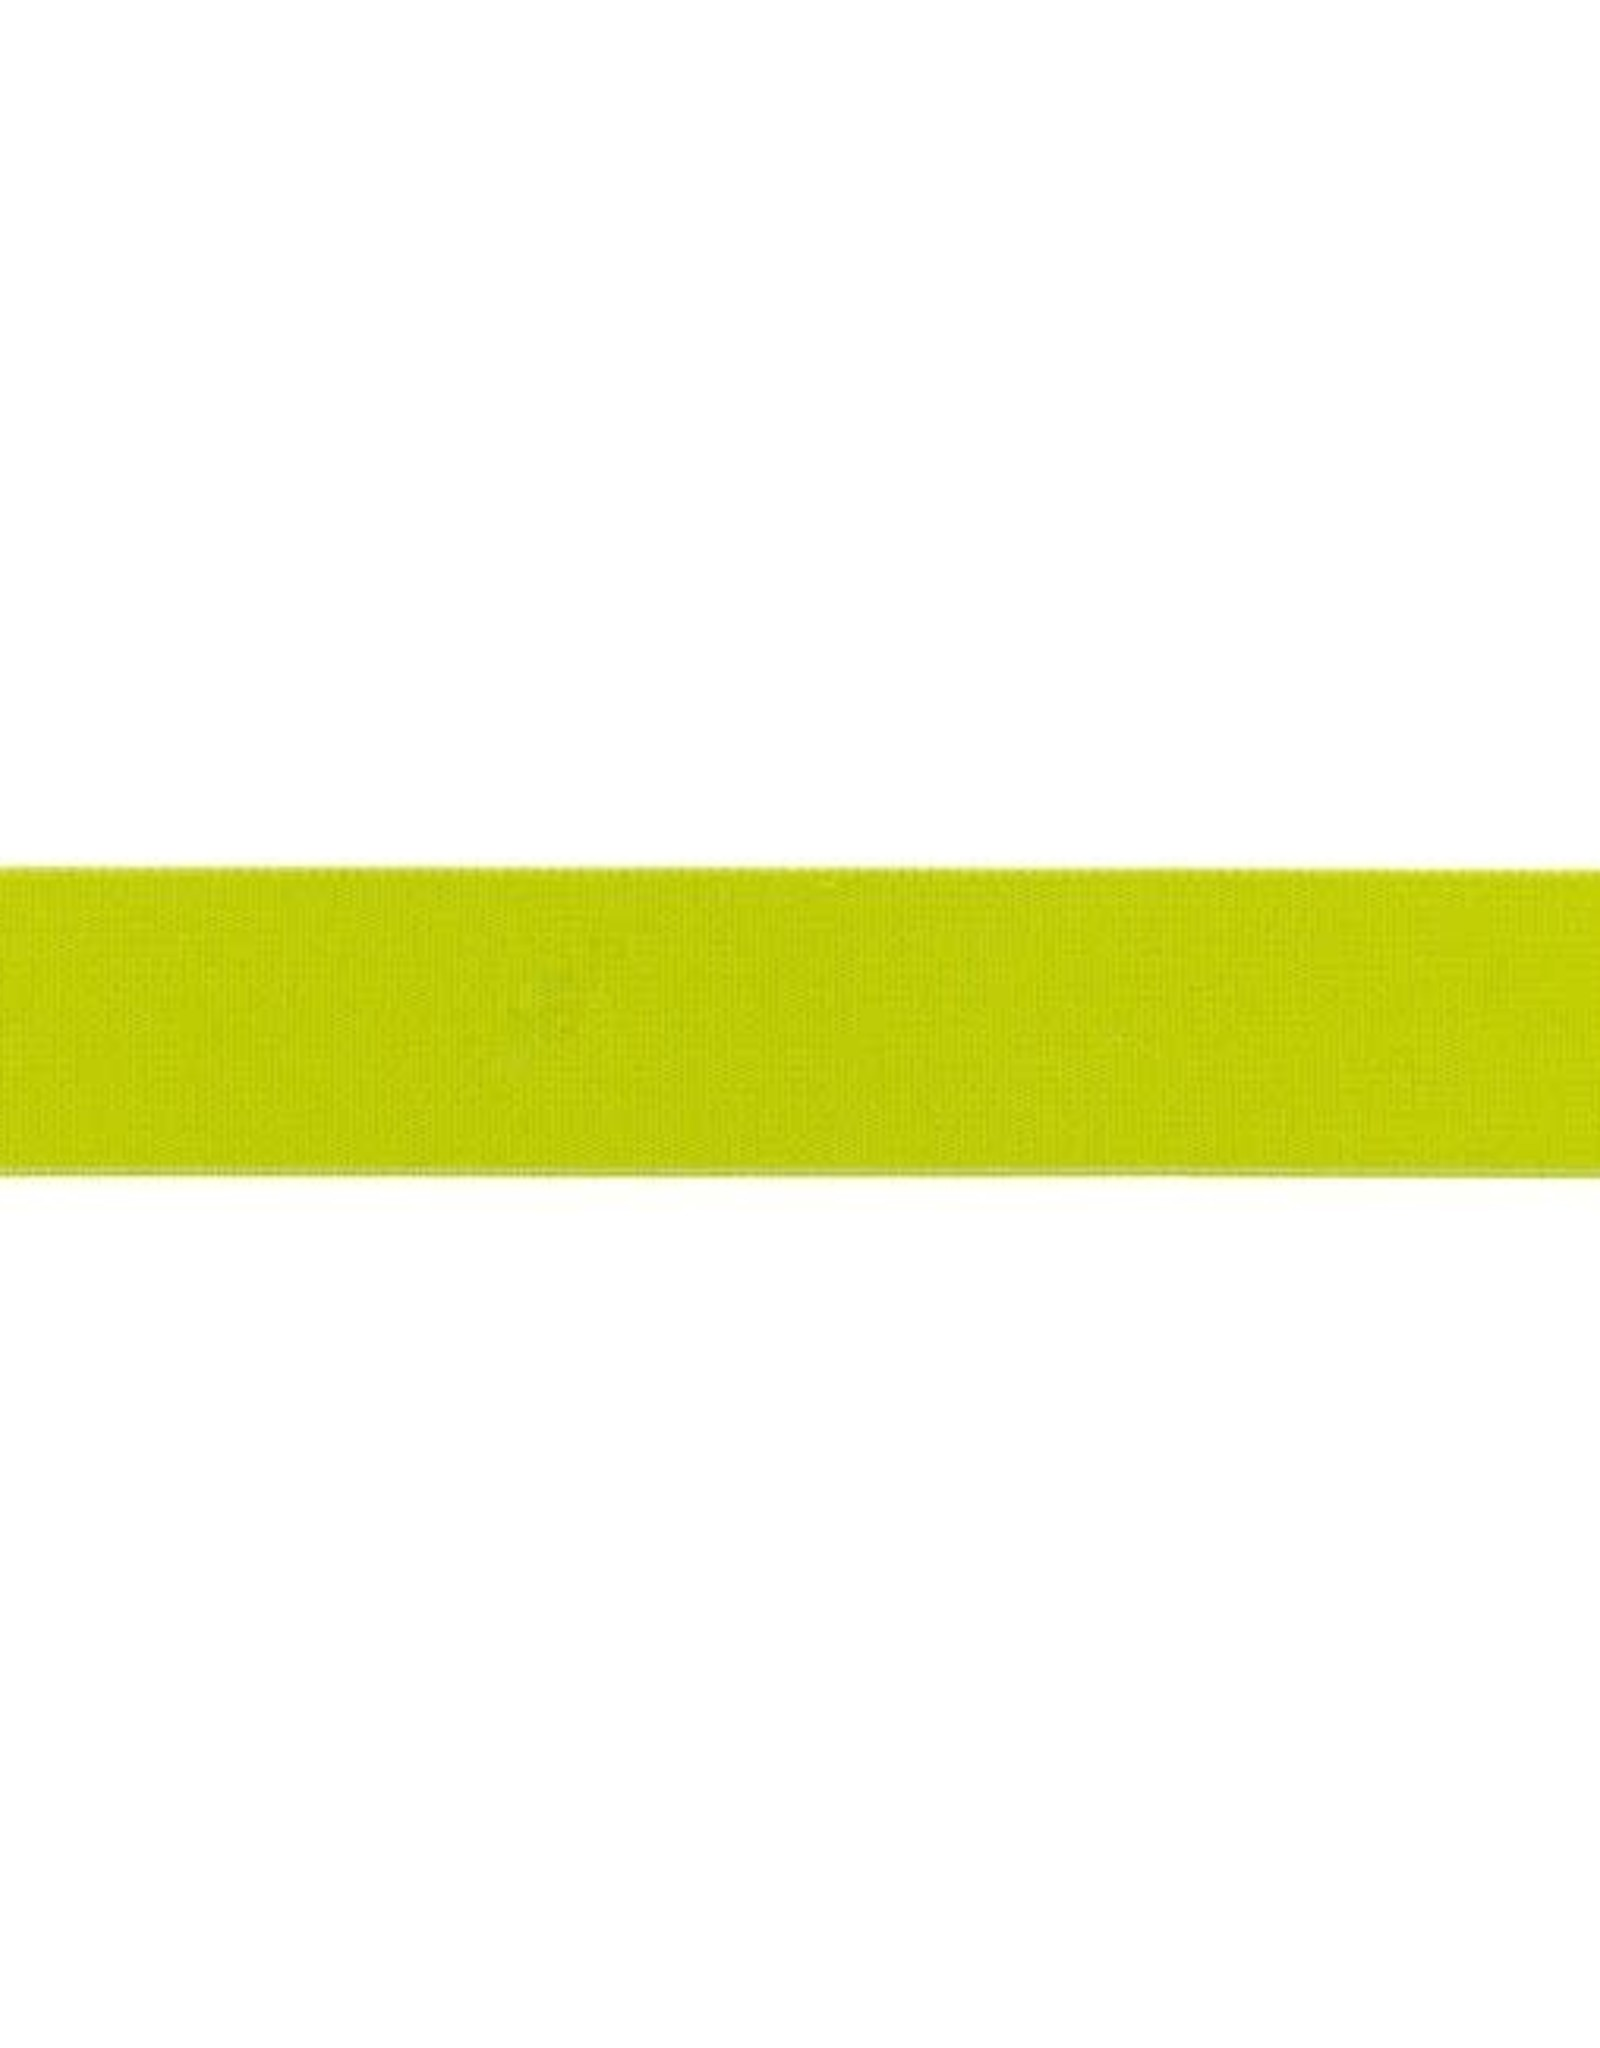 Soft elastiek 25mm - Lime Groen